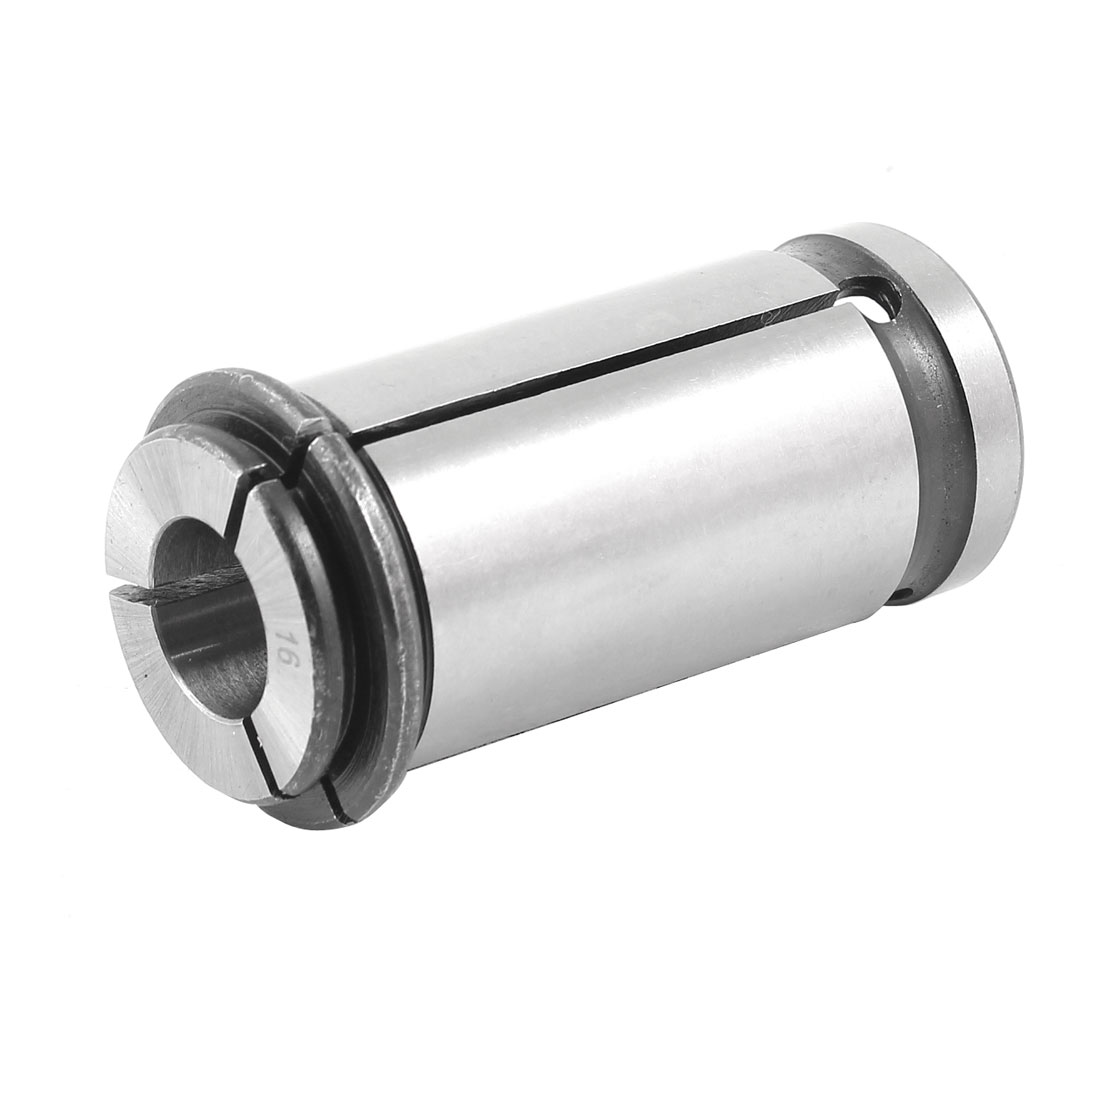 Milling Tool 16mm Clamp Diameter Straight Shank Spring Collet